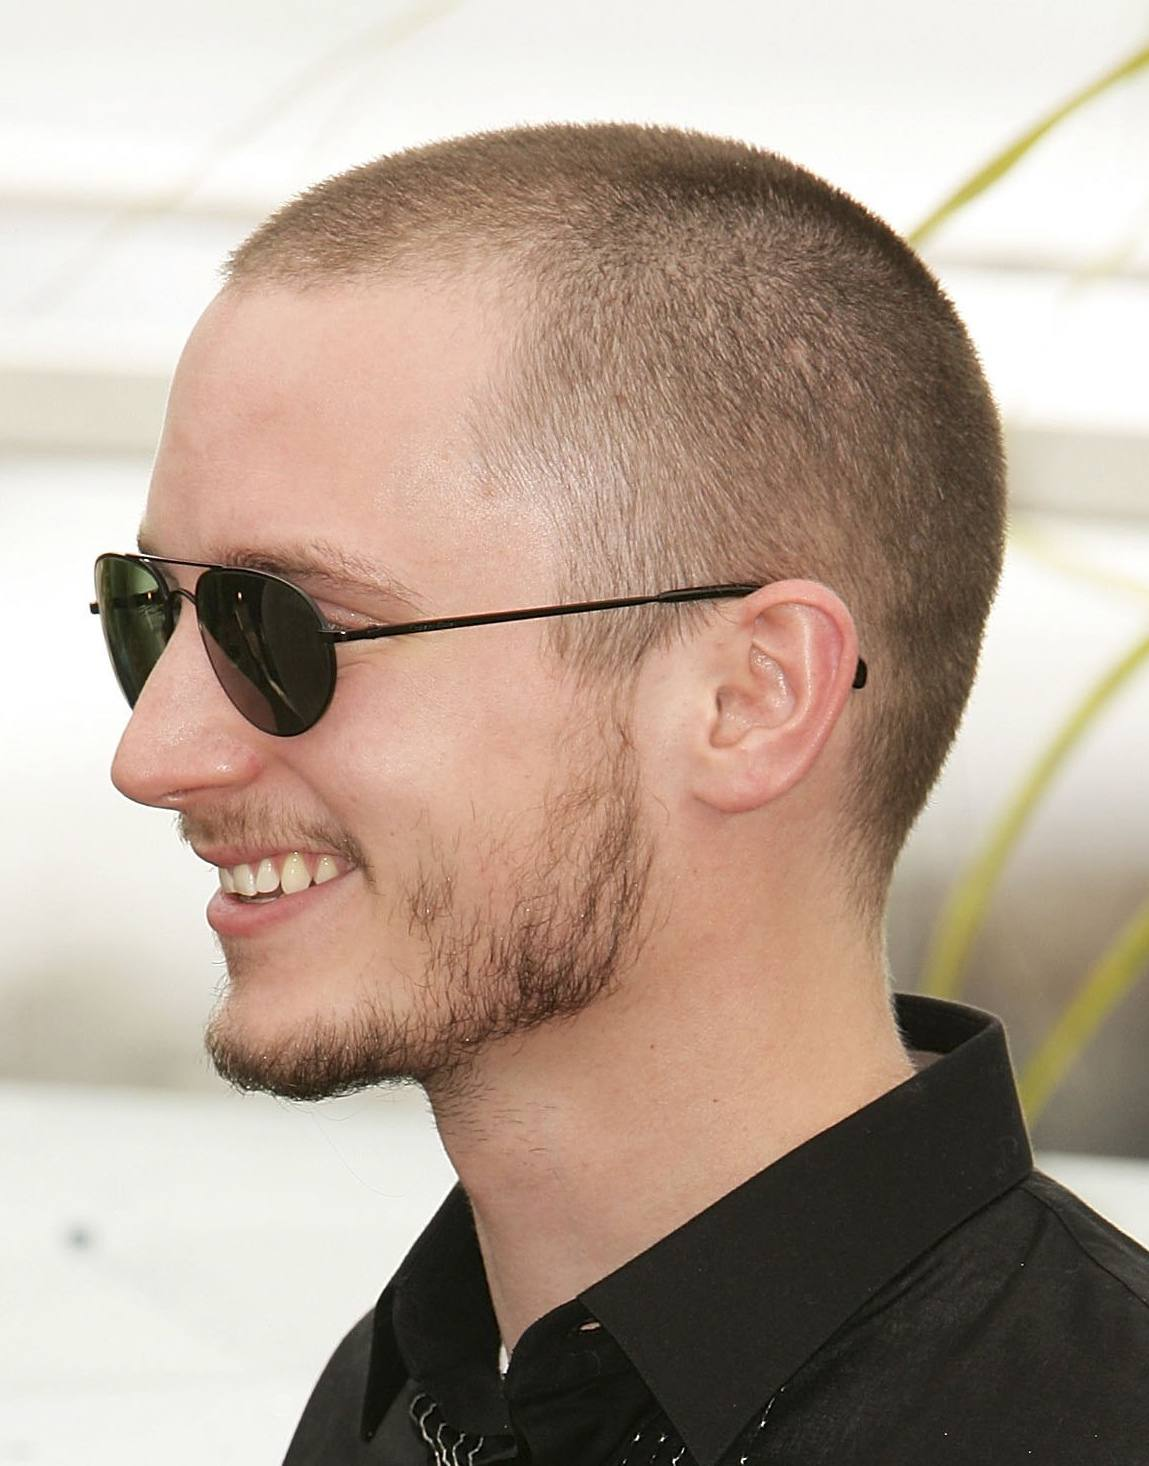 Top Buzz Cut Looks For Men